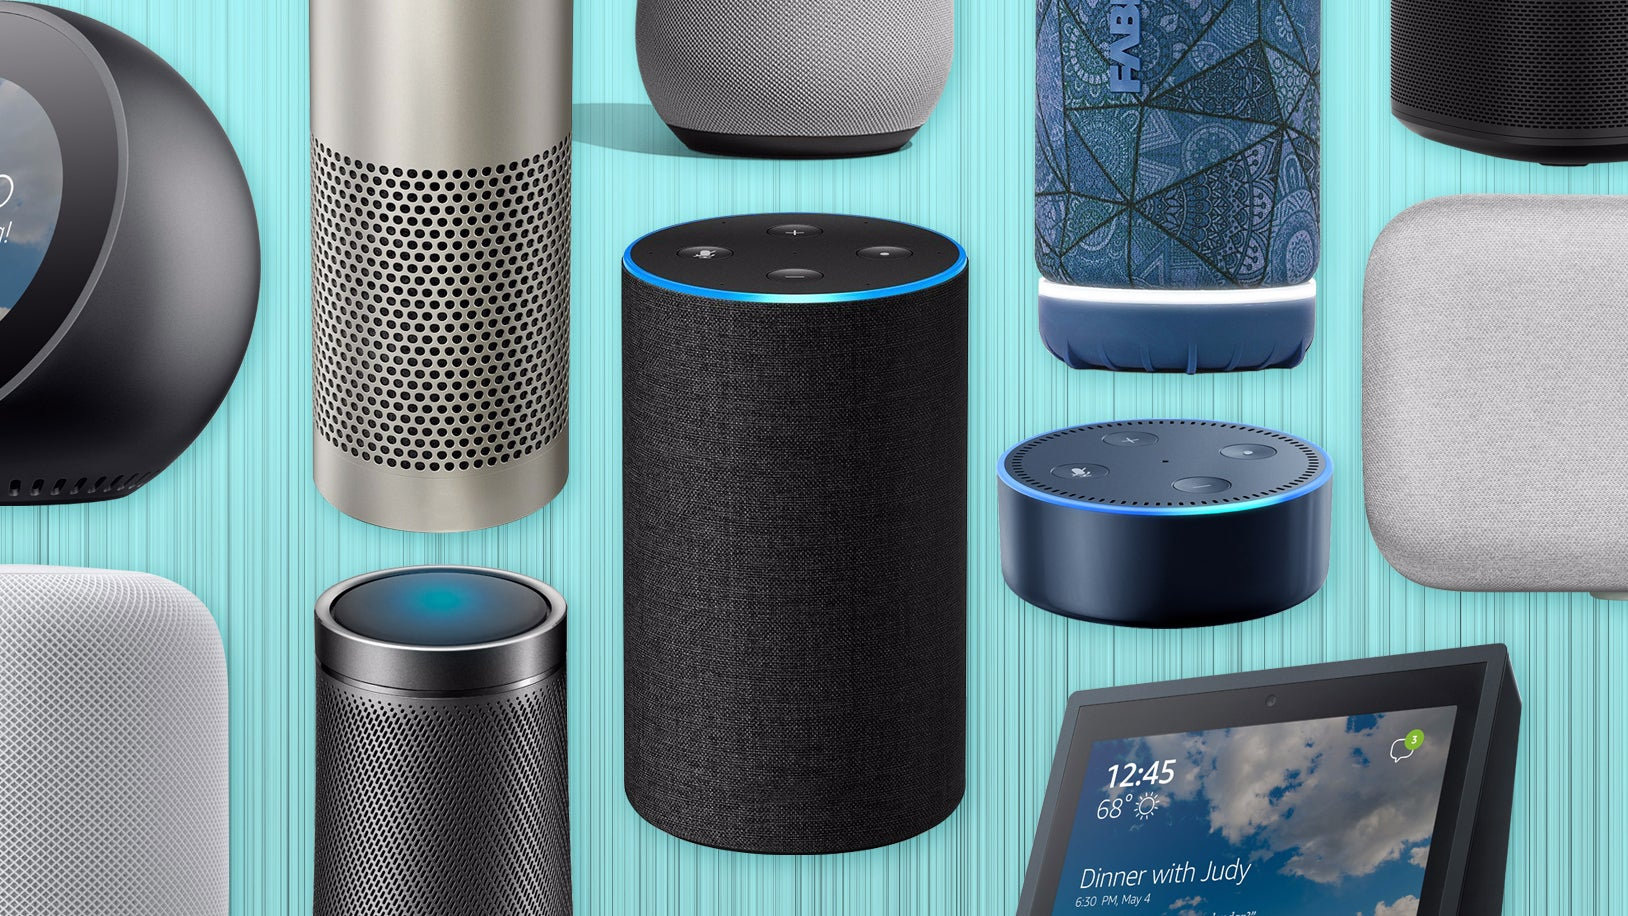 Best smart speakers of 2019: Reviews and buying advice